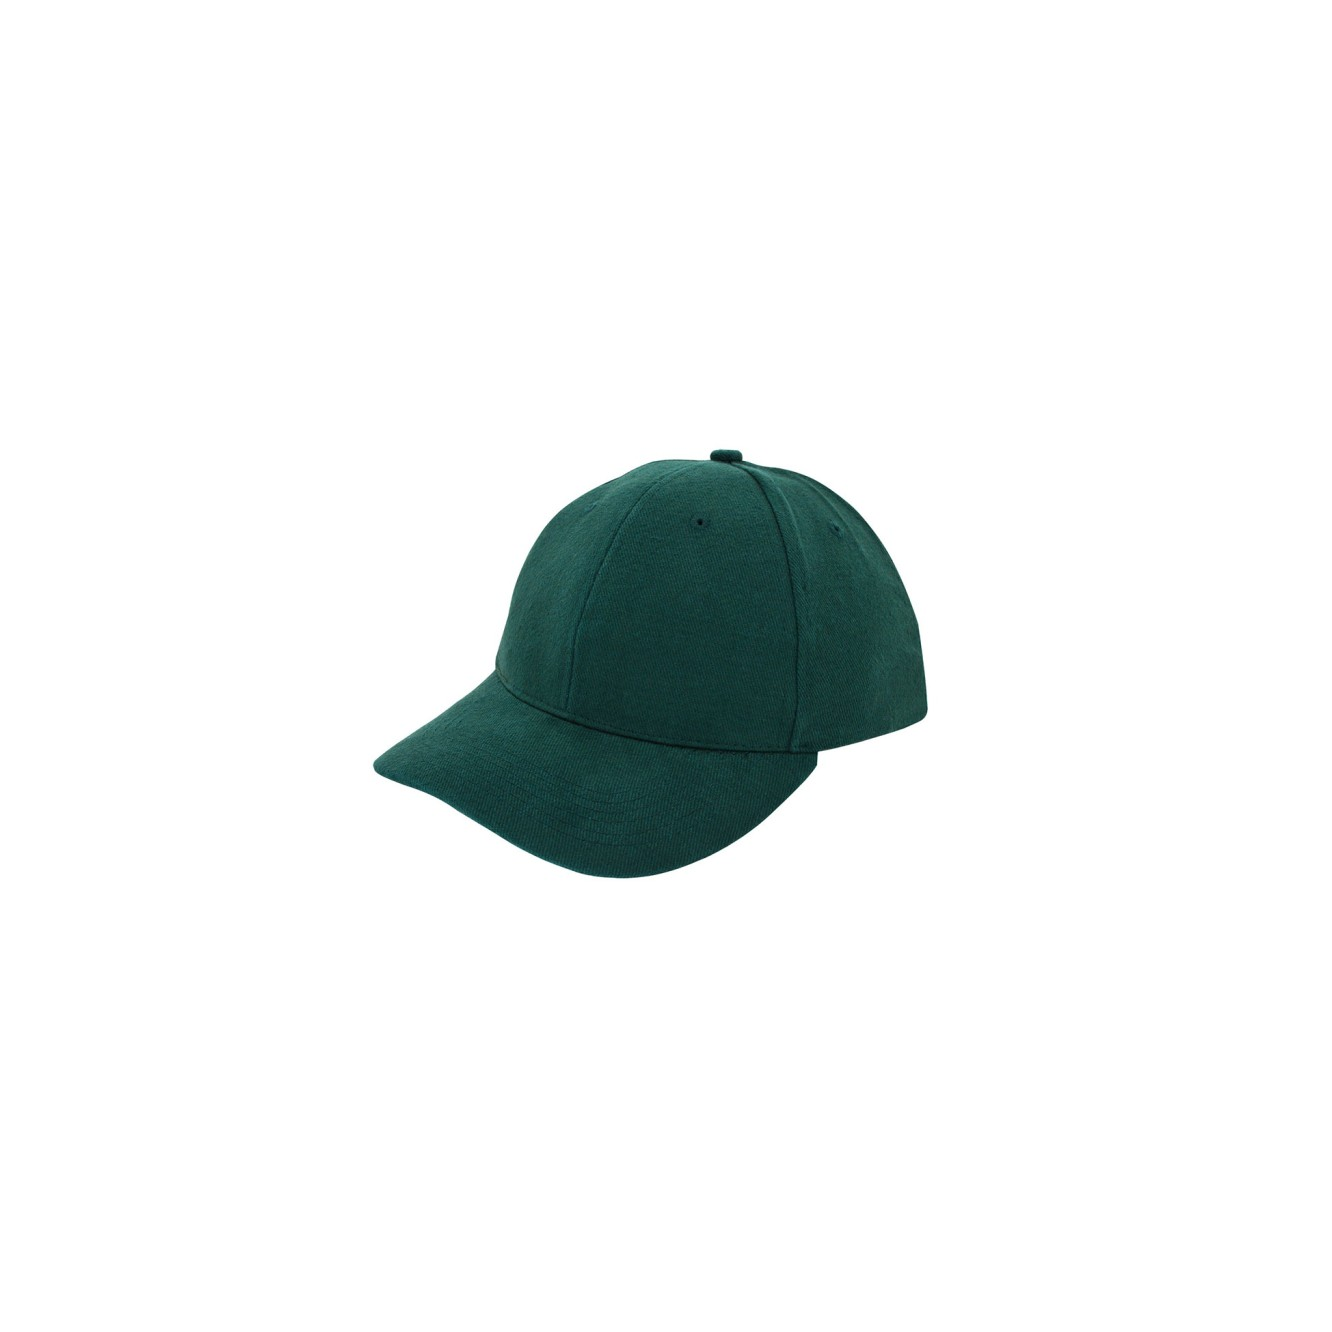 Brushed Twill cap